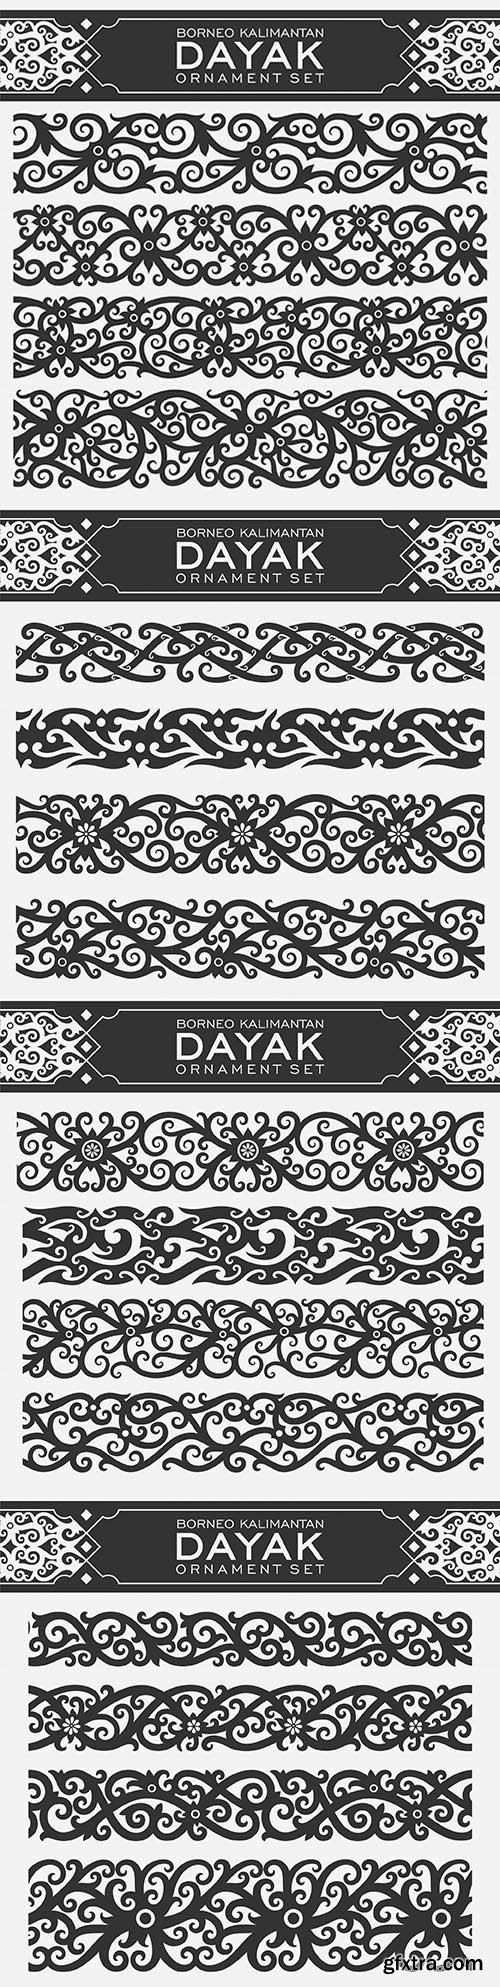 Borneo Kalimantan Dayak ornament set illustration design